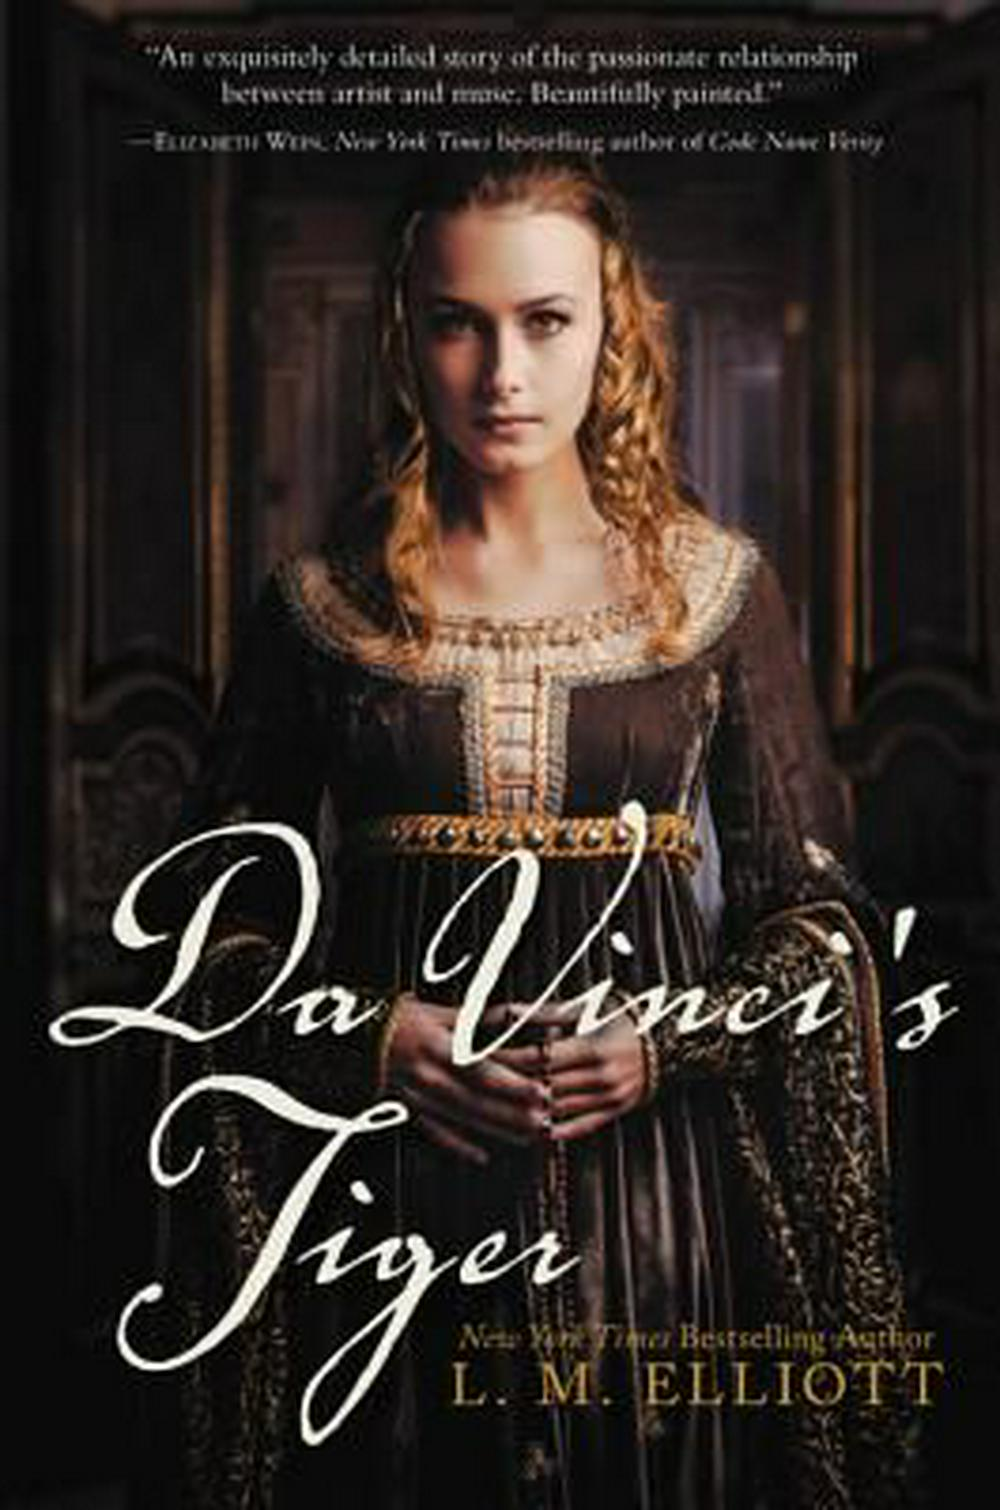 Da Vinci's Tiger by L.M. Elliott - This historical novel about Ginevra de'Benci (you can see her portrait in the National Gallery of Art in Washington DC) is beautifully written, especially for a younger audience. It has a strong female lead that is sure to inspire and — bonus! — it's out in paperback this fall!